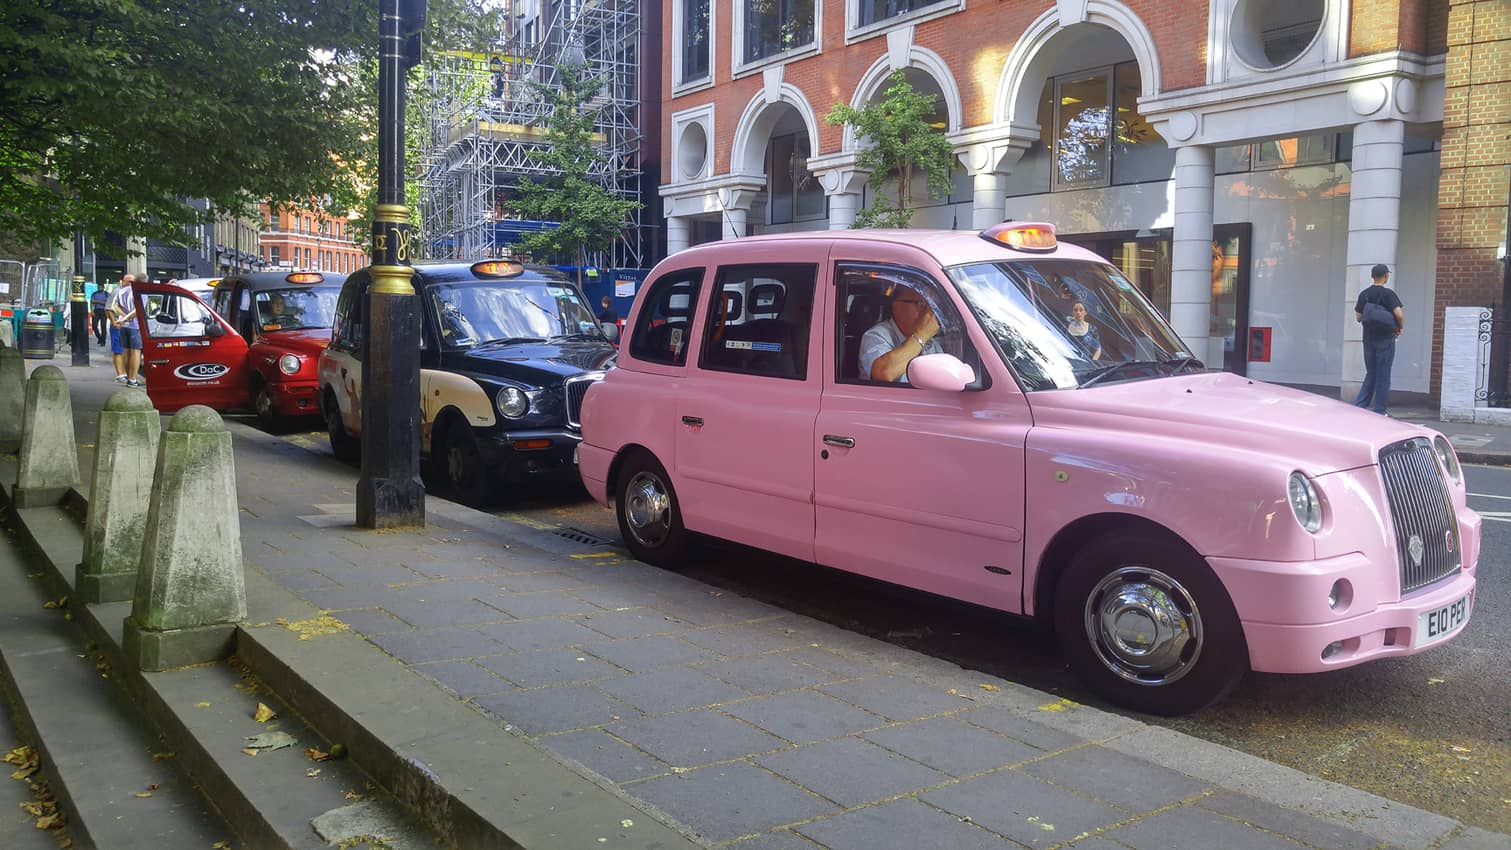 In London, take a taxi.